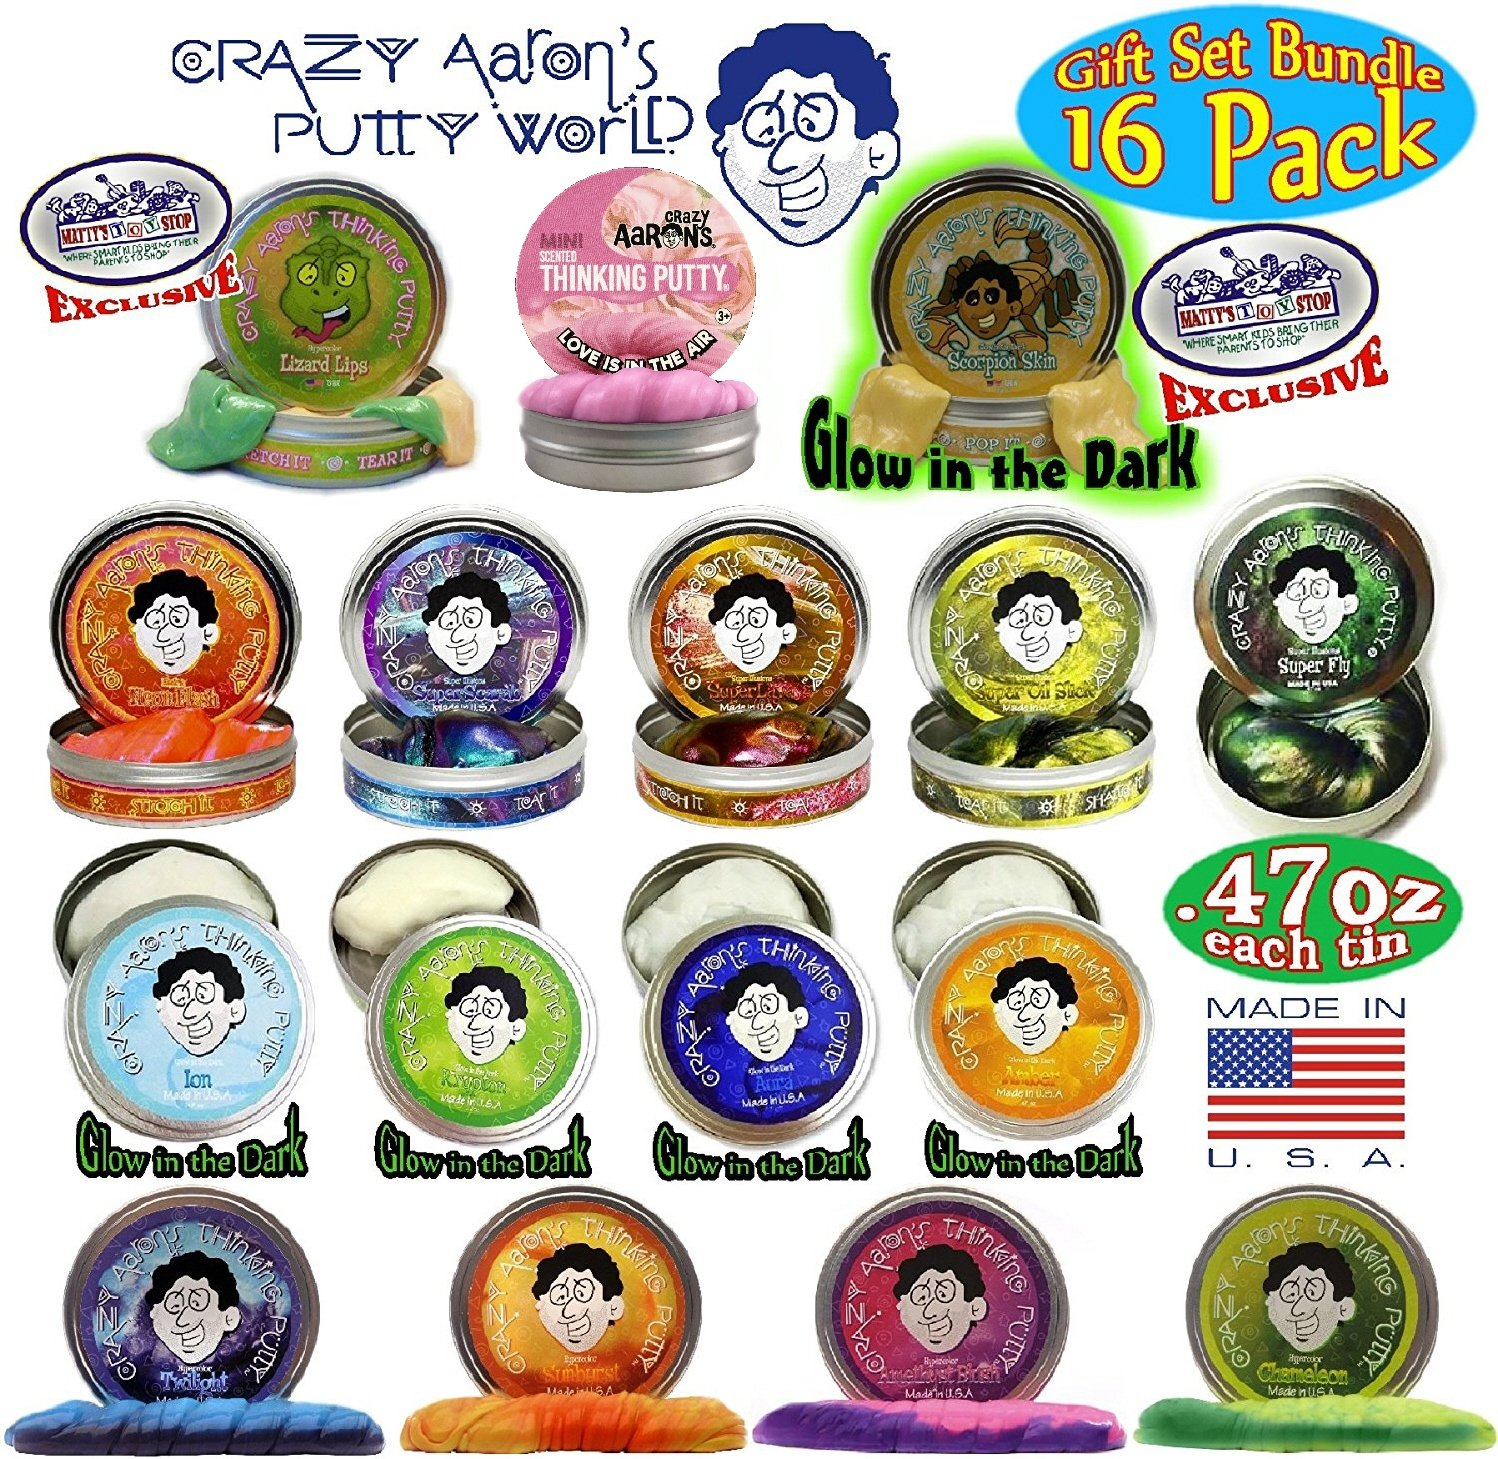 Crazy Aaron's Thinking Putty Mini Tins Complete Gift Set Bundle Featuring Hypercolor, Glow in the Dark, Super Illusion, Electric Color, Scented, Exclusive ''Lizard Lips'' & ''Scorpion Skin'' - 16 Pack